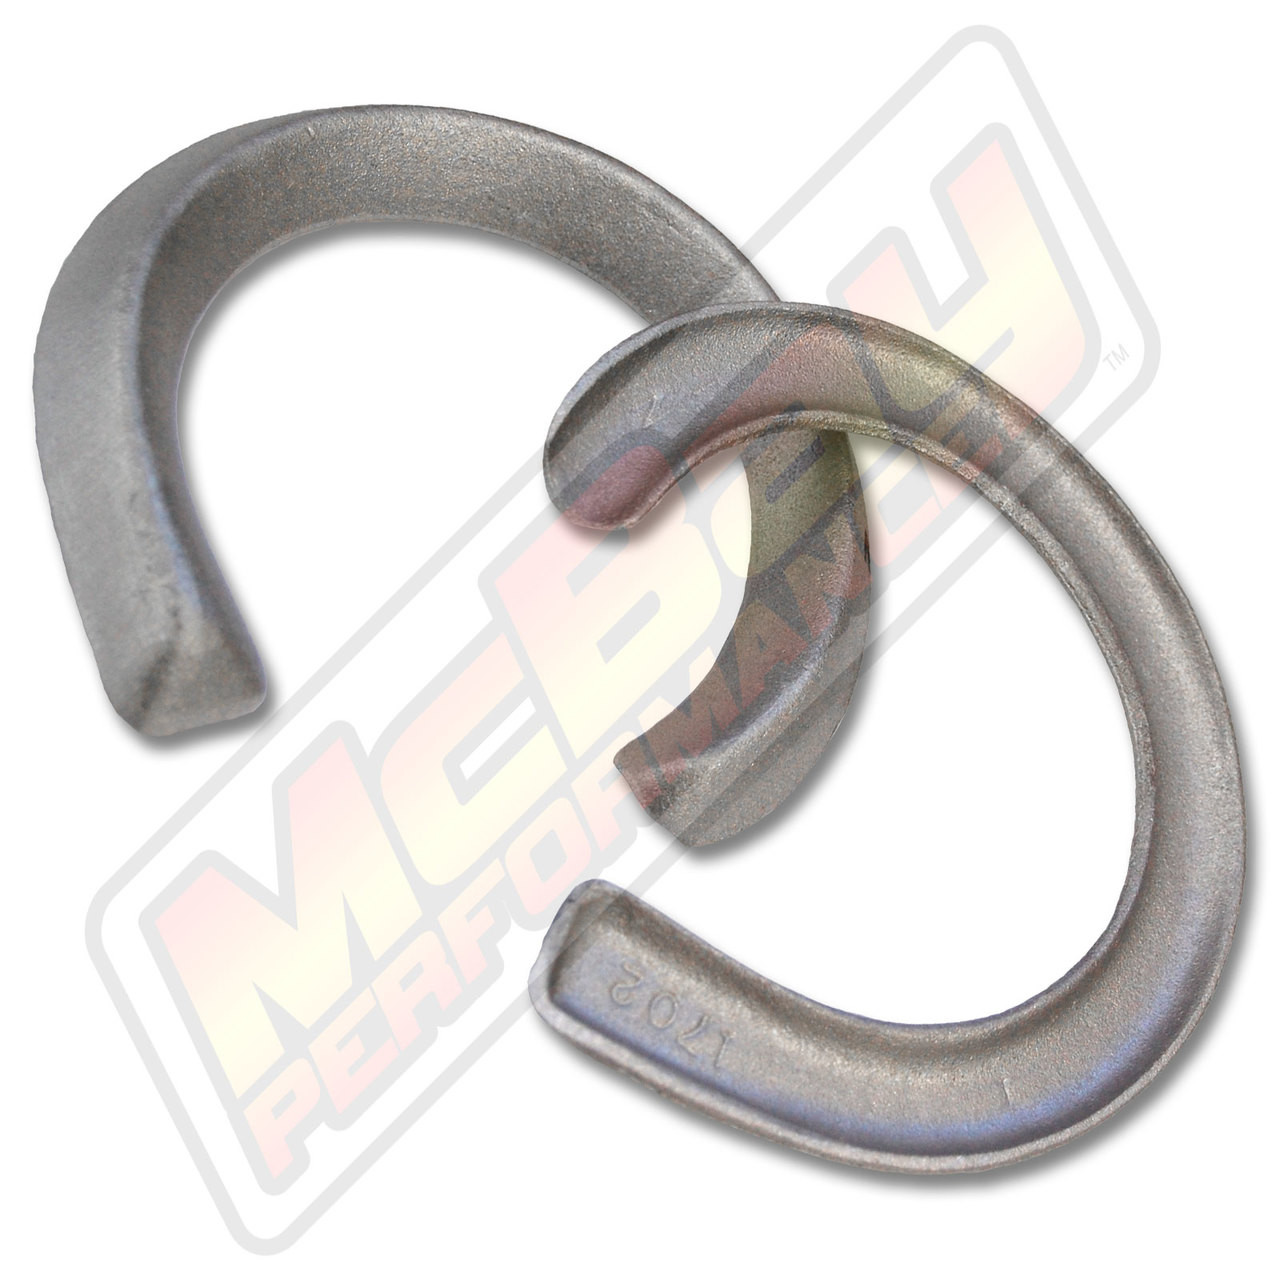 """Part Number 1702 - 15/16"""" to 1-1/8"""" Lift Front Coil Spring Spacer Set"""